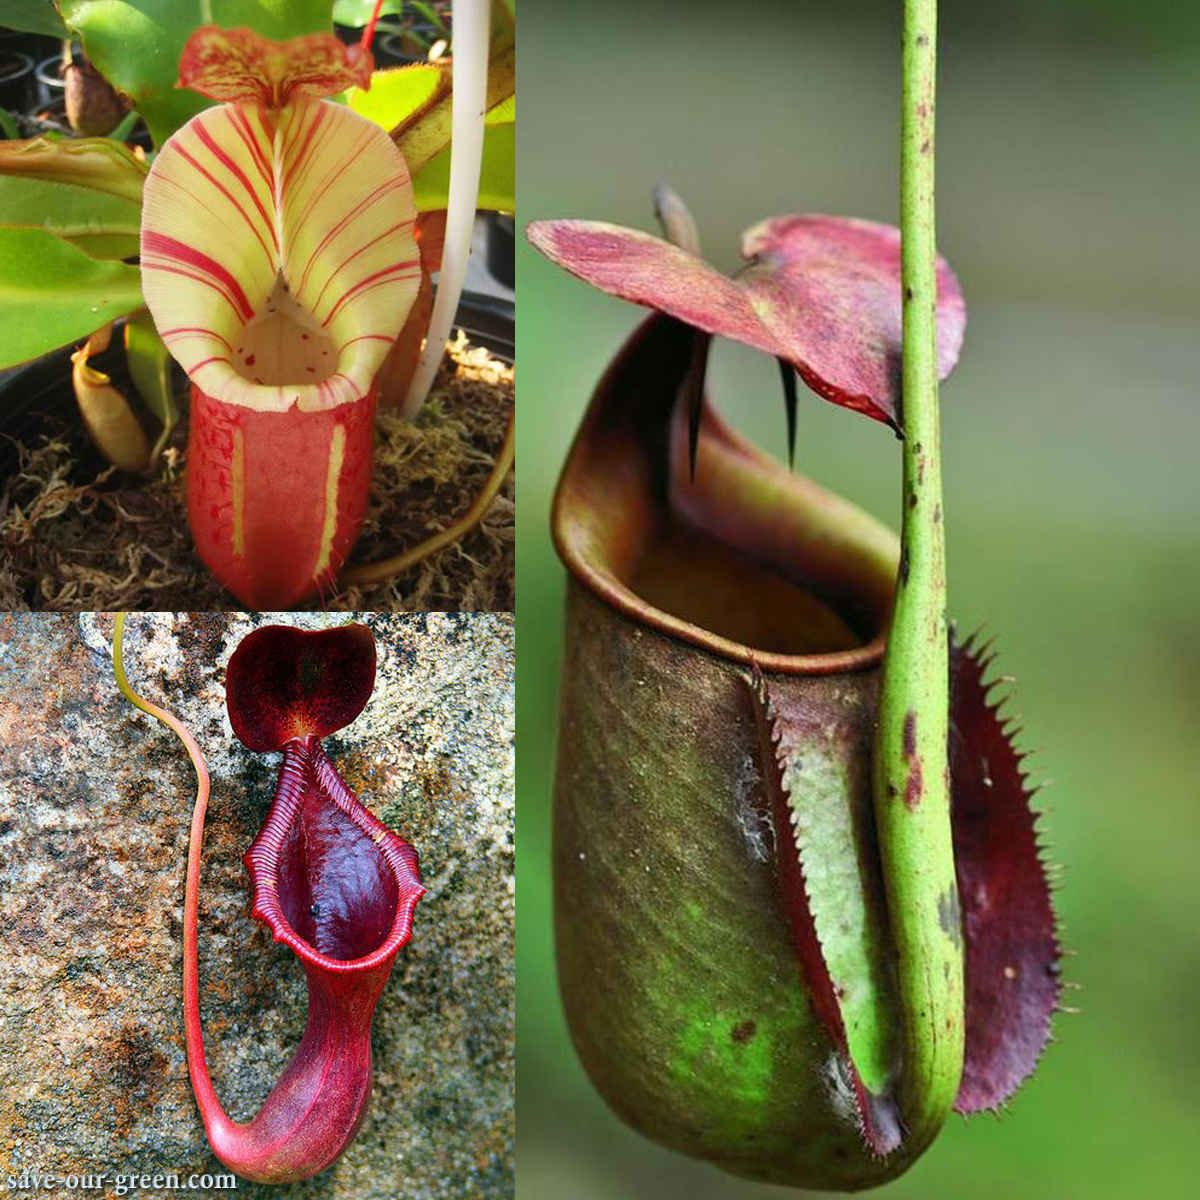 Nepenthes Bonsai Flower Seeds Plants And Herbs Carnivorous Purify Air Catch